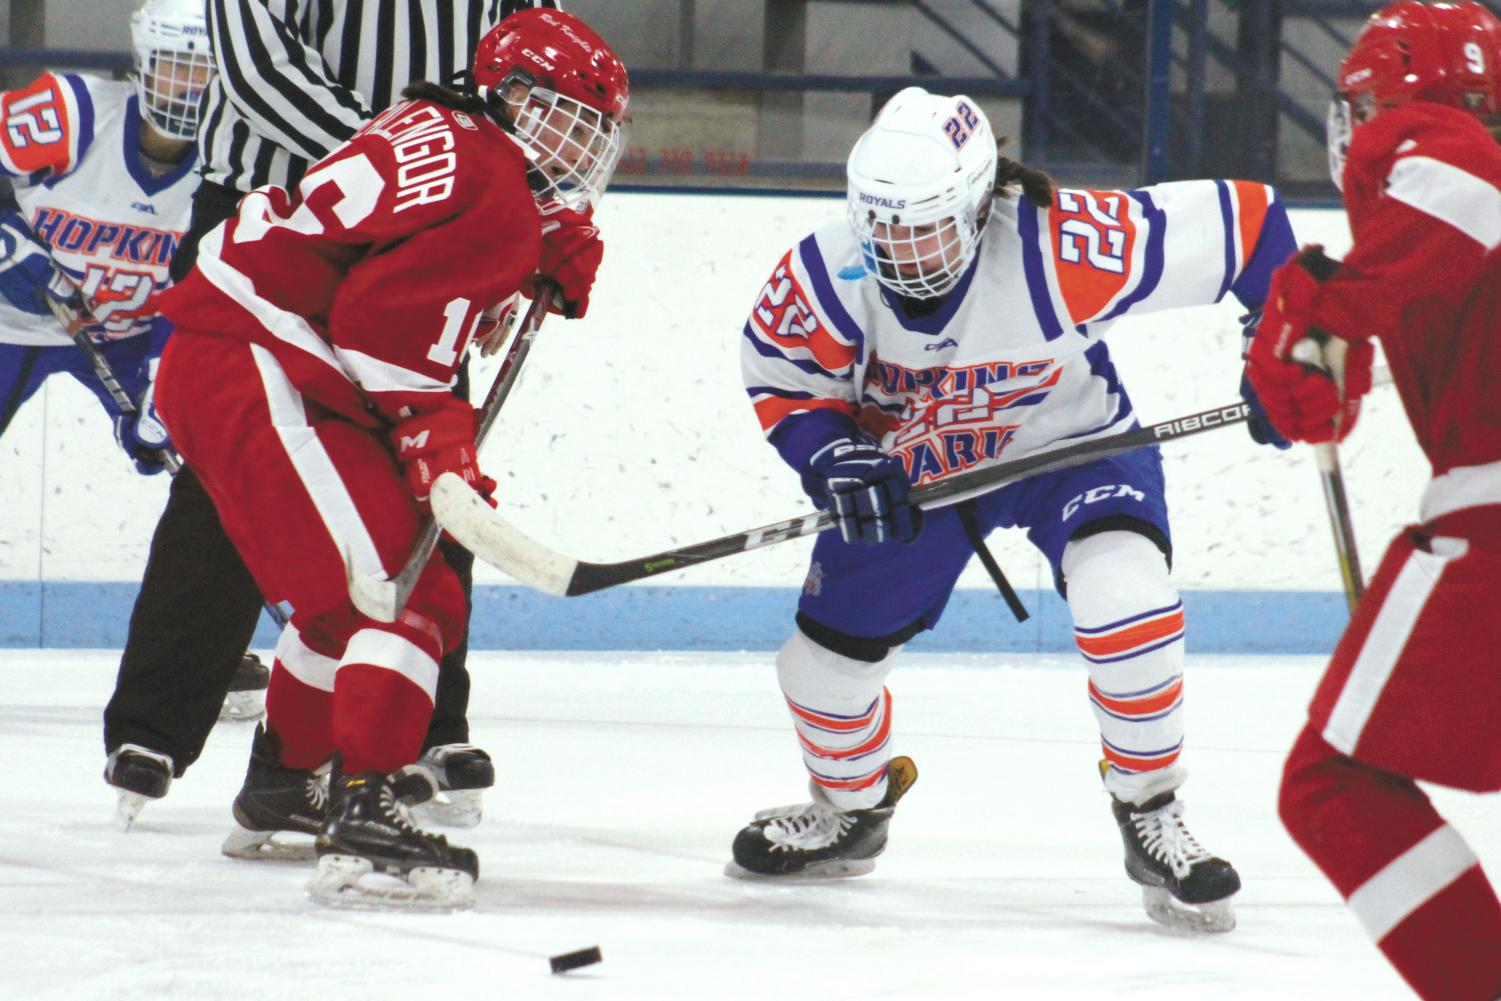 Sophomore Erin Brousseau fights for the puck against Benilde senior Sally Calengor. Its next game will be 7 p.m. Nov. 30 at Minnetonka Ice Arena.